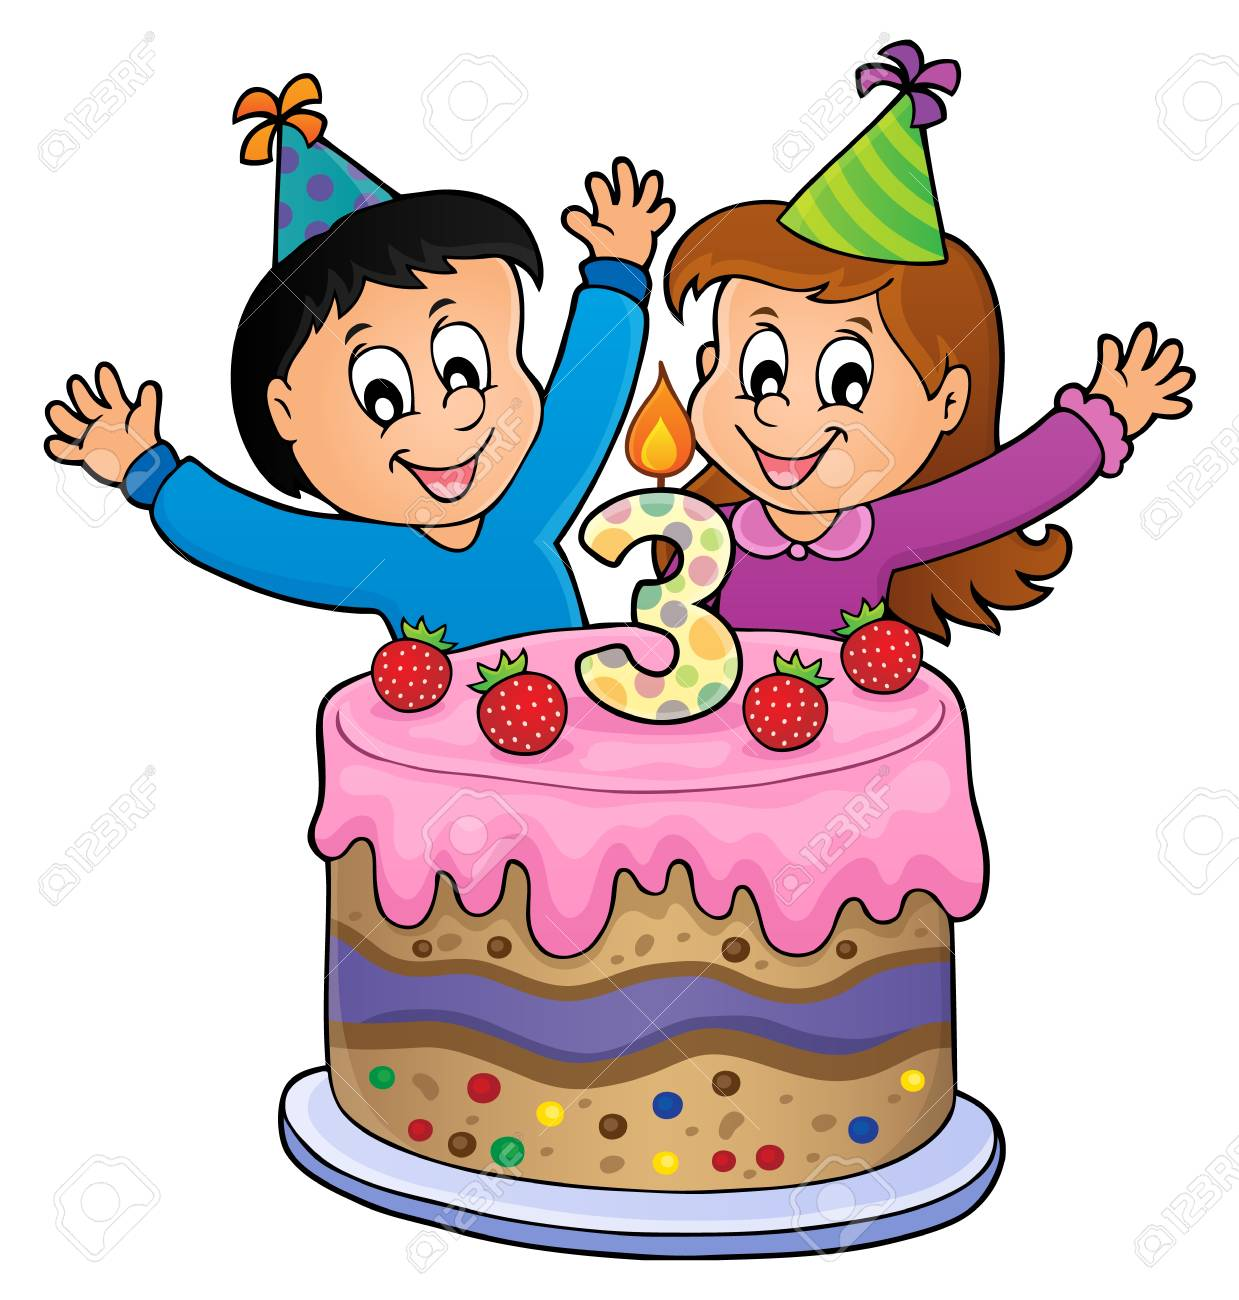 Marvelous Two Kids Waving Hands In Front Of A Cake Happy Birthday Image Funny Birthday Cards Online Overcheapnameinfo